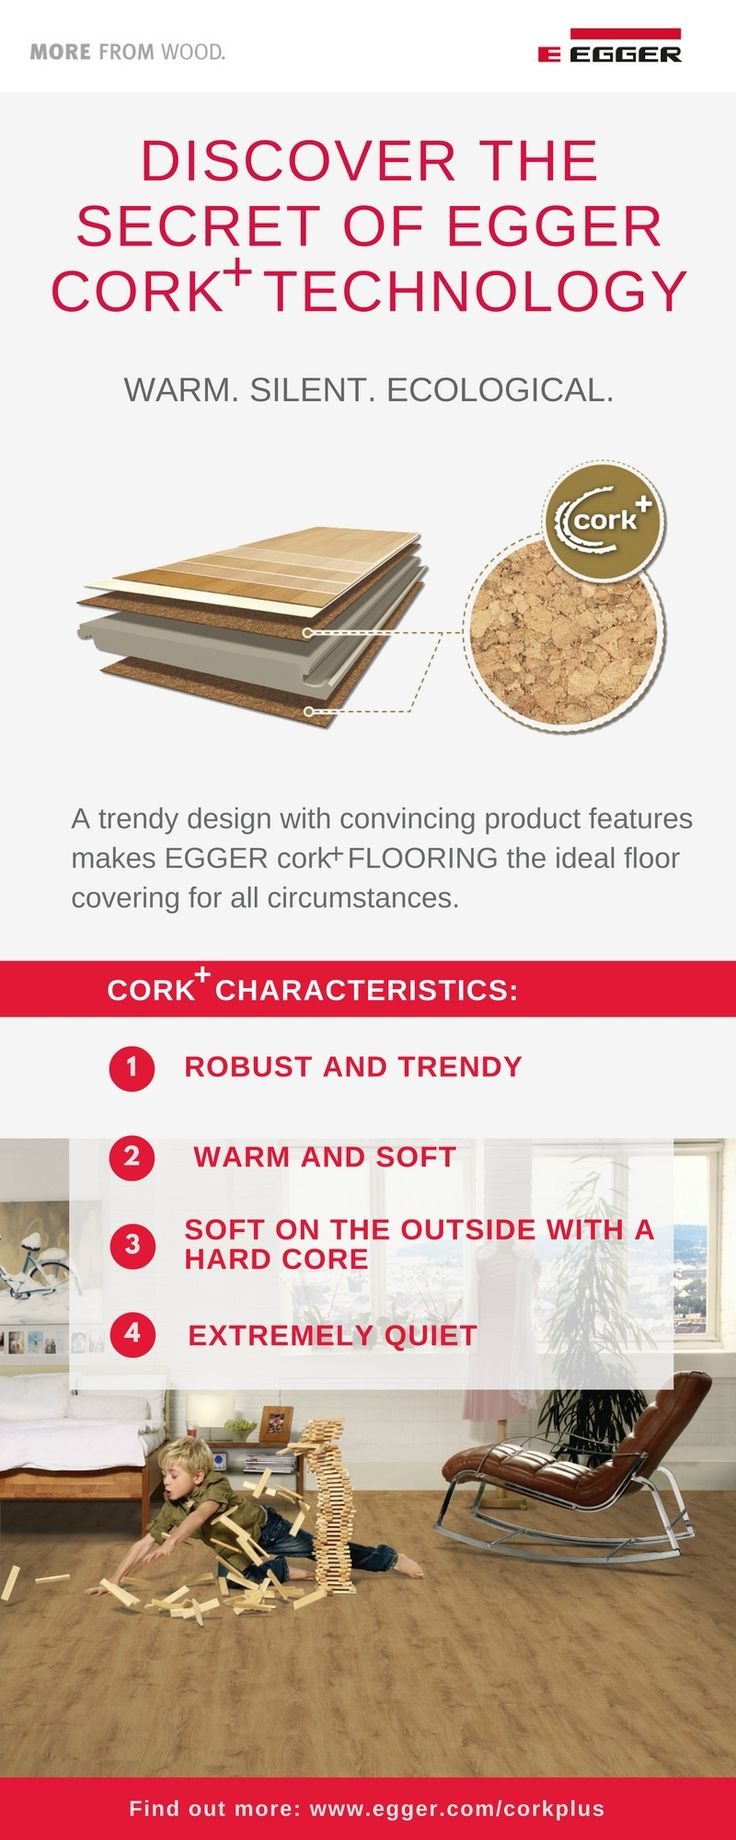 100 floor and decor arlington tx floor and decor pompano 29 best cork flooring images on pinterest corks cork flooring egger cork flooring warm silent ecological